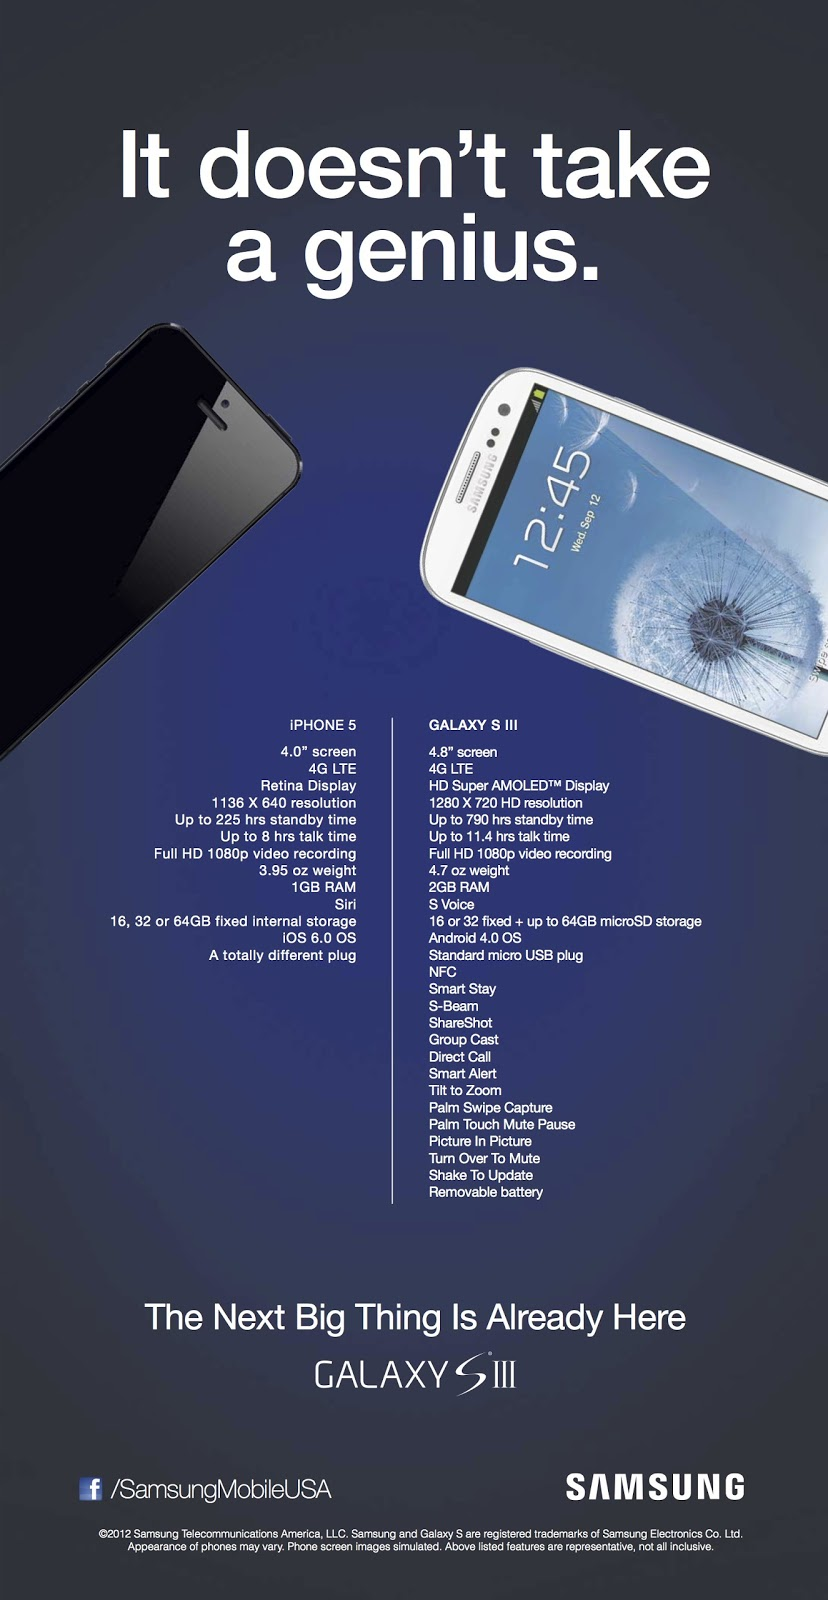 samsung galaxy s iii vs apple iphone 5 comparison poster